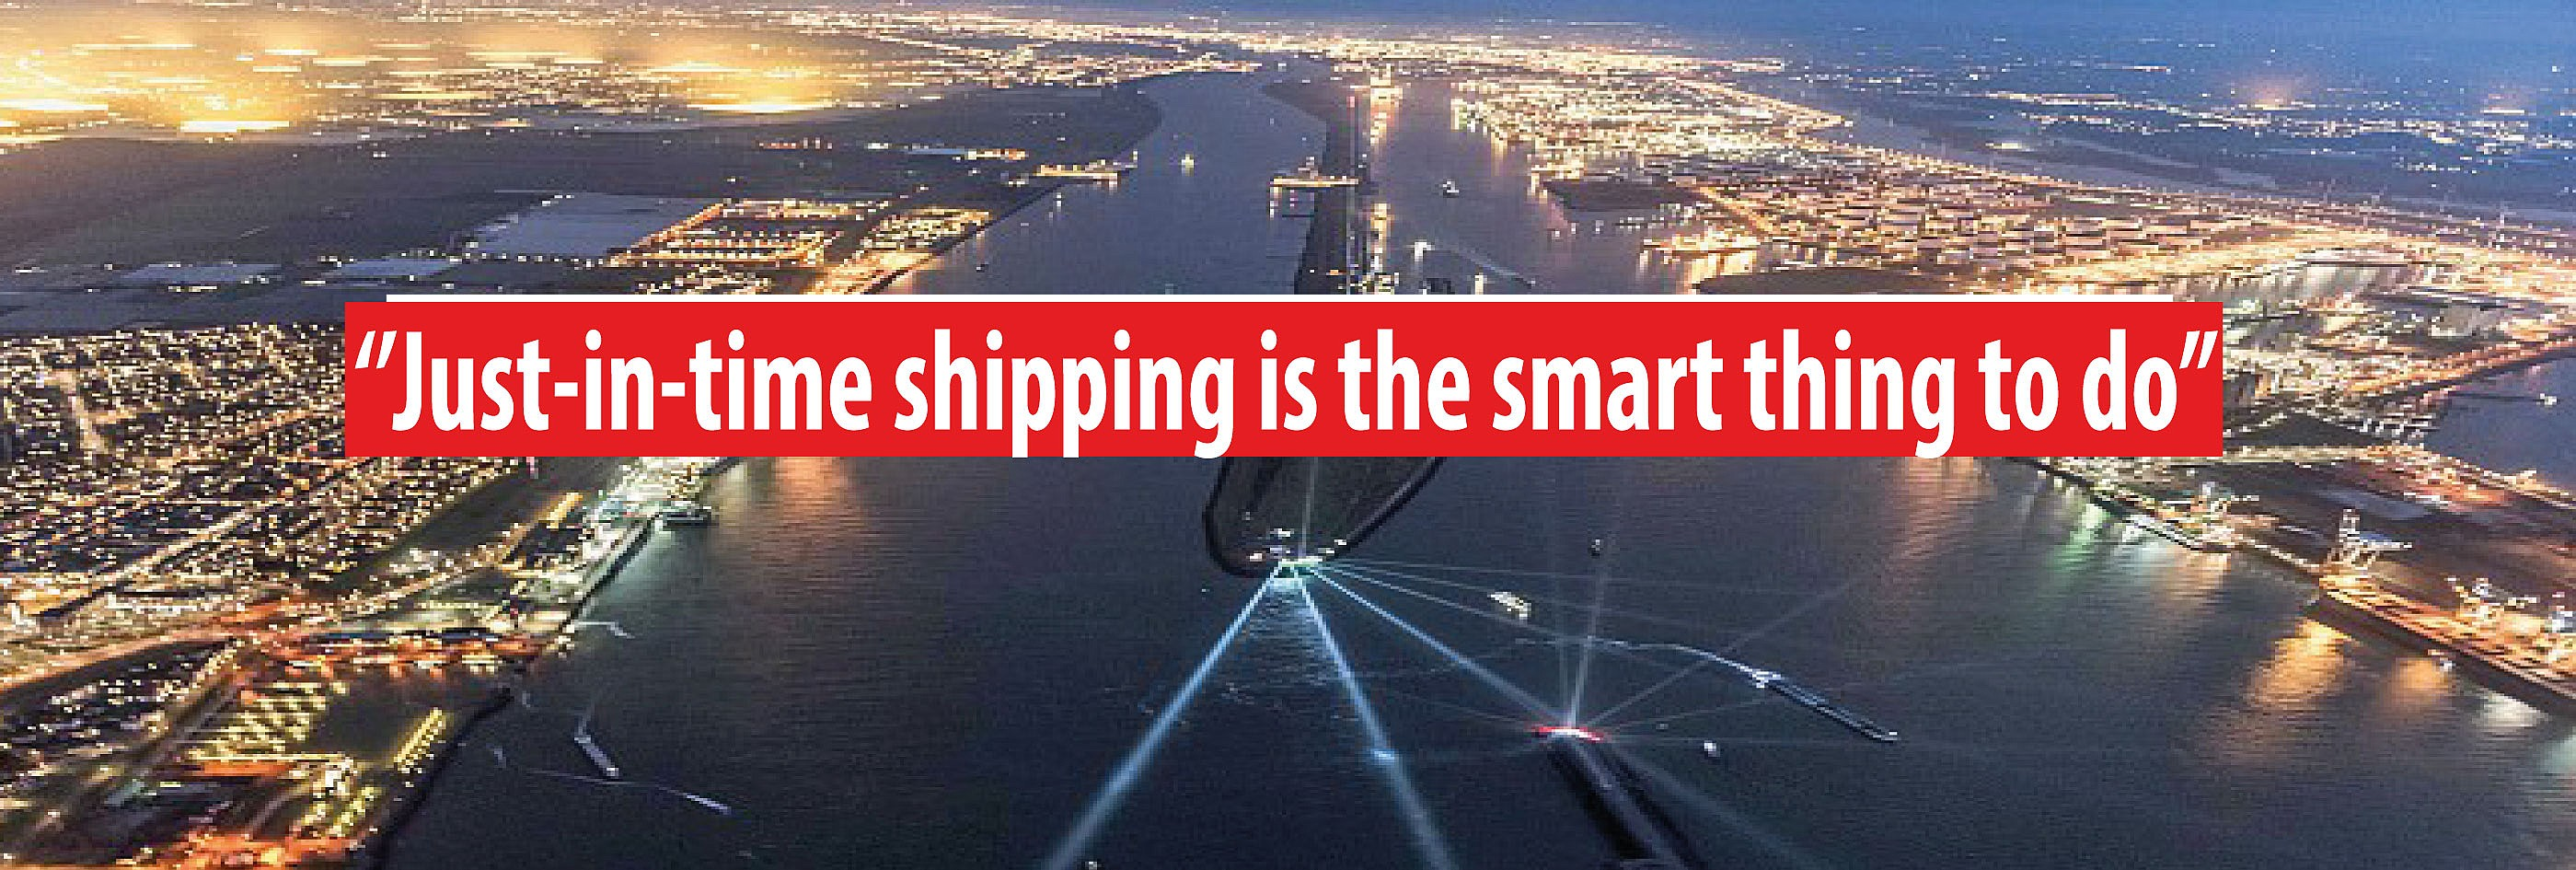 'Just-in-time shipping is the smart thing to do'